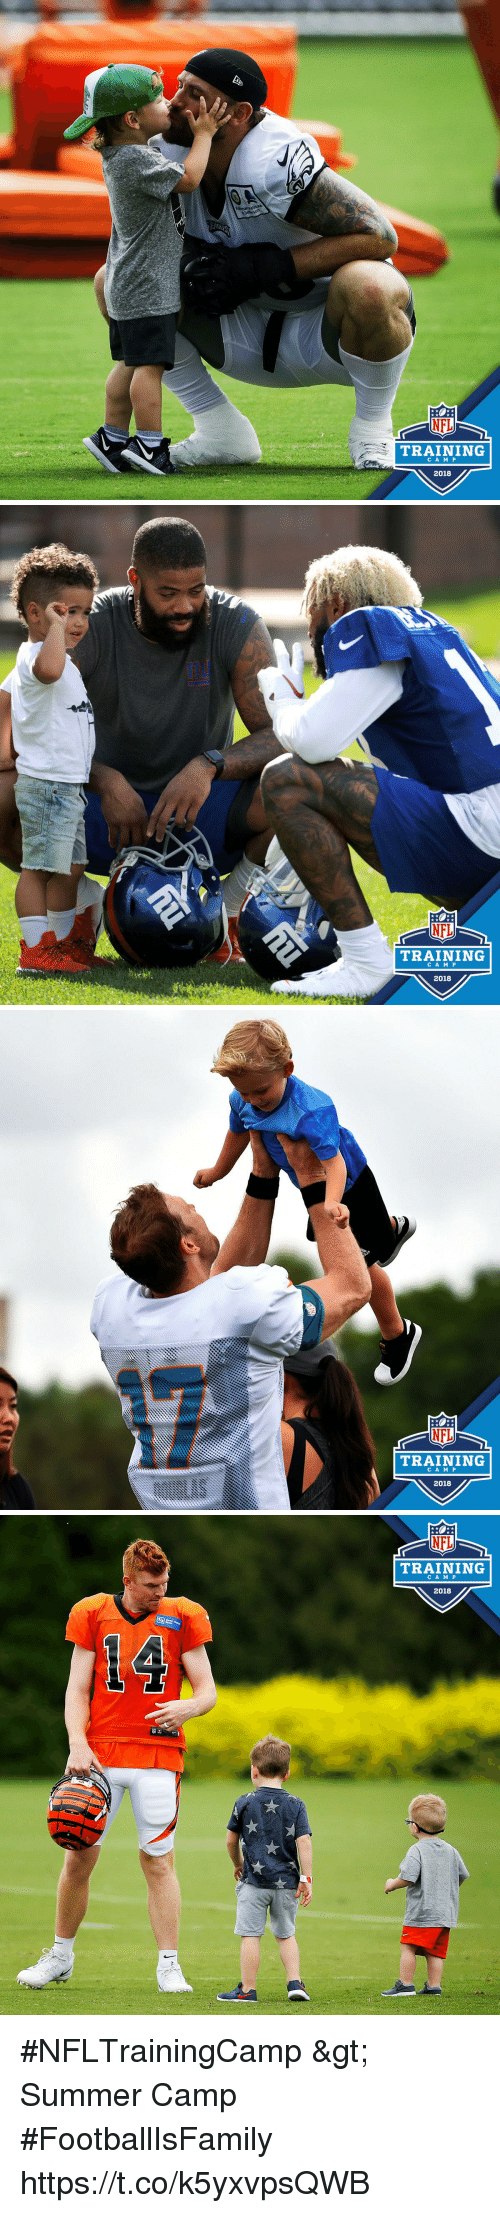 summer camp: NFL  TRAINING  CA M P  2018   nu  NFL  TRAINING  CA M P  2018   NFL  TRAINING  2016   NFL  TRAINING  CA M P  2018 #NFLTrainingCamp > Summer Camp  #FootballIsFamily https://t.co/k5yxvpsQWB